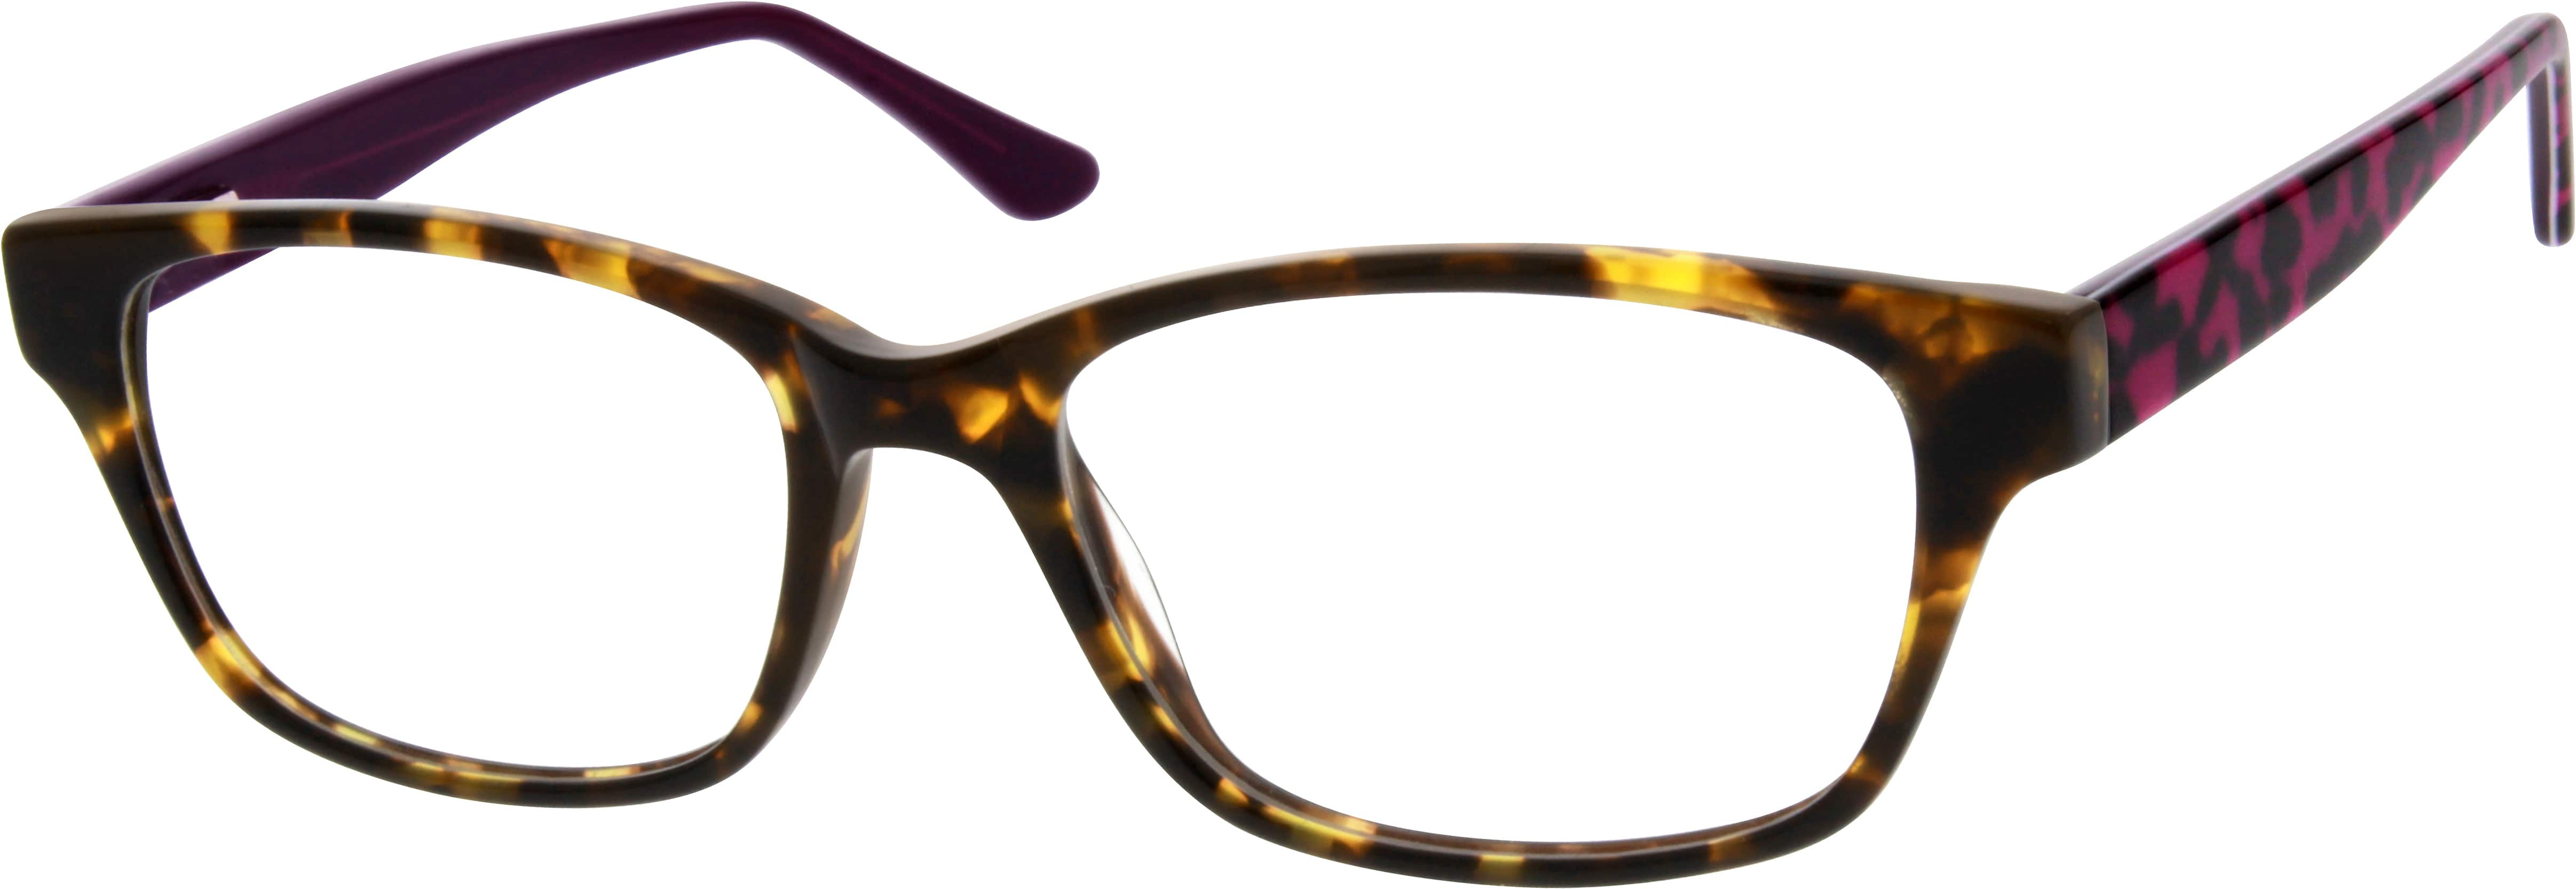 Women Full Rim Acetate/Plastic Eyeglasses #182625